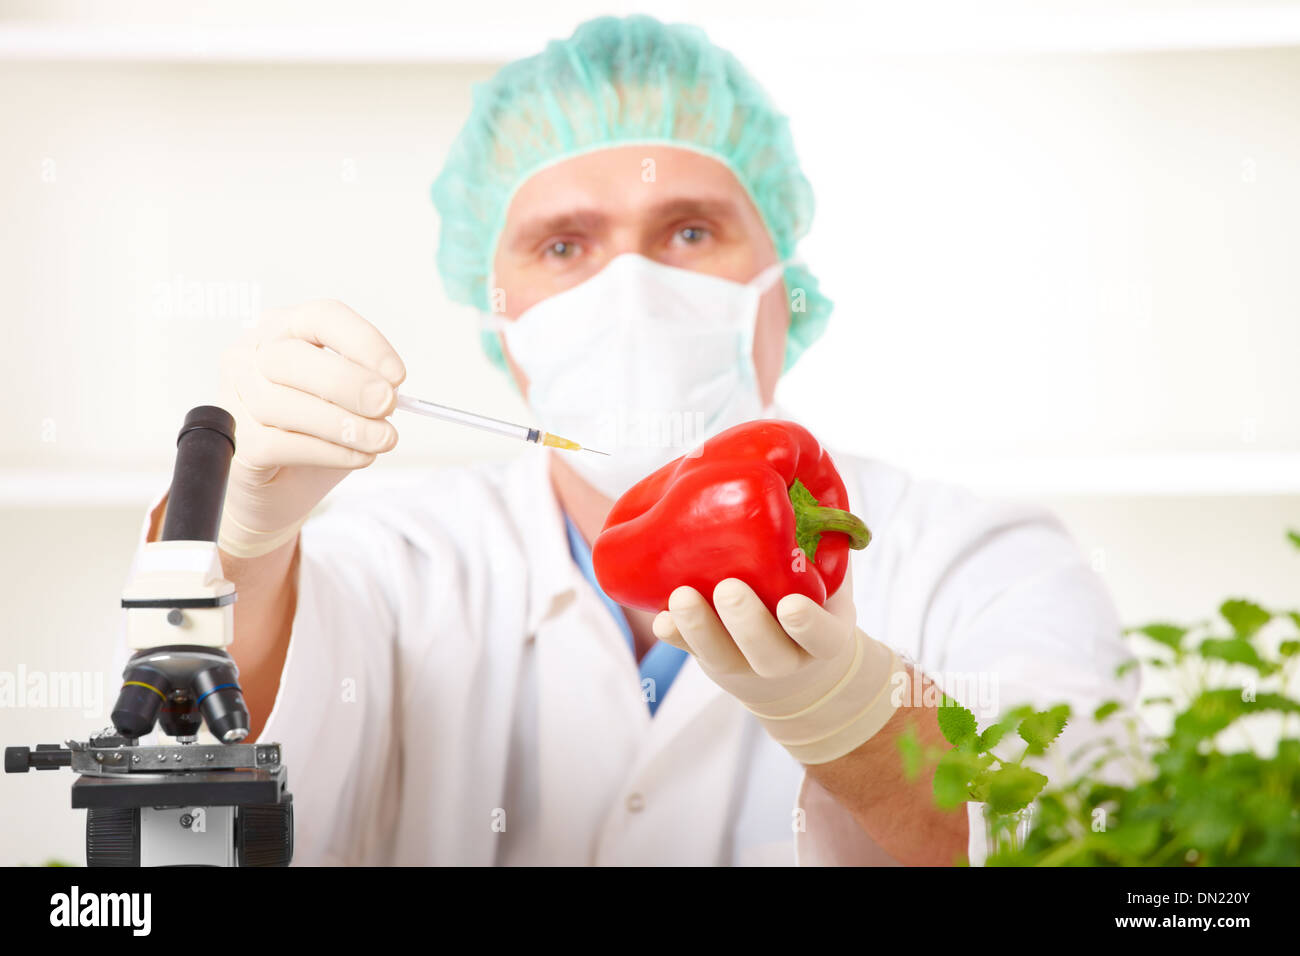 Researcher holding up a GMO vegetable Stock Photo